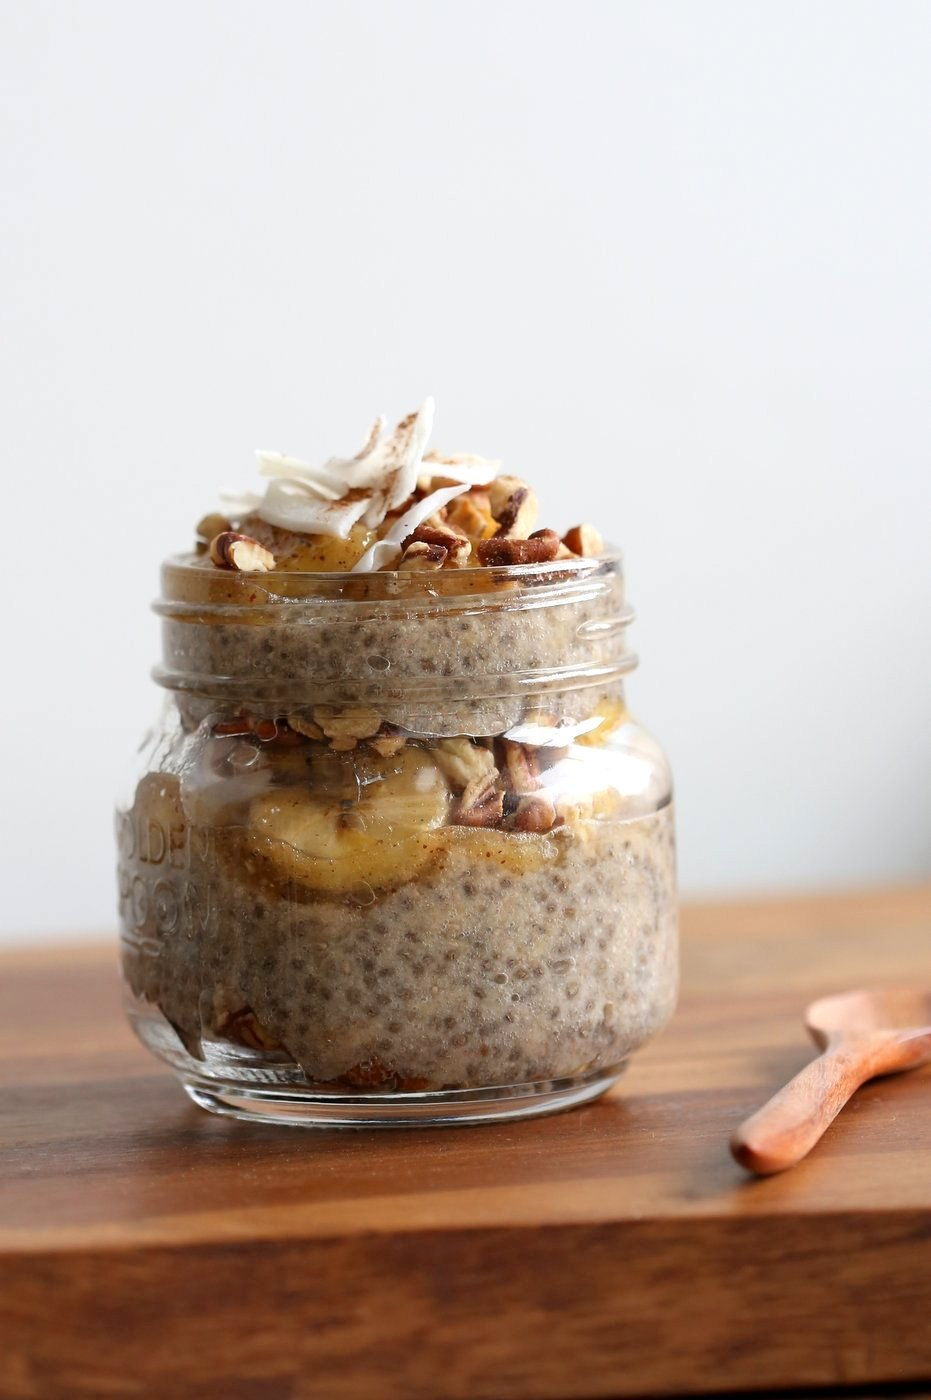 Banana Chia Pudding with Caramelized Banana and Coconut. Banana Bread in Chia Pudding form. Vegan Breakfast Recipe. #Glutenfree #Soyfree #Recipe. Can be #Nutfree | VeganRicha.com